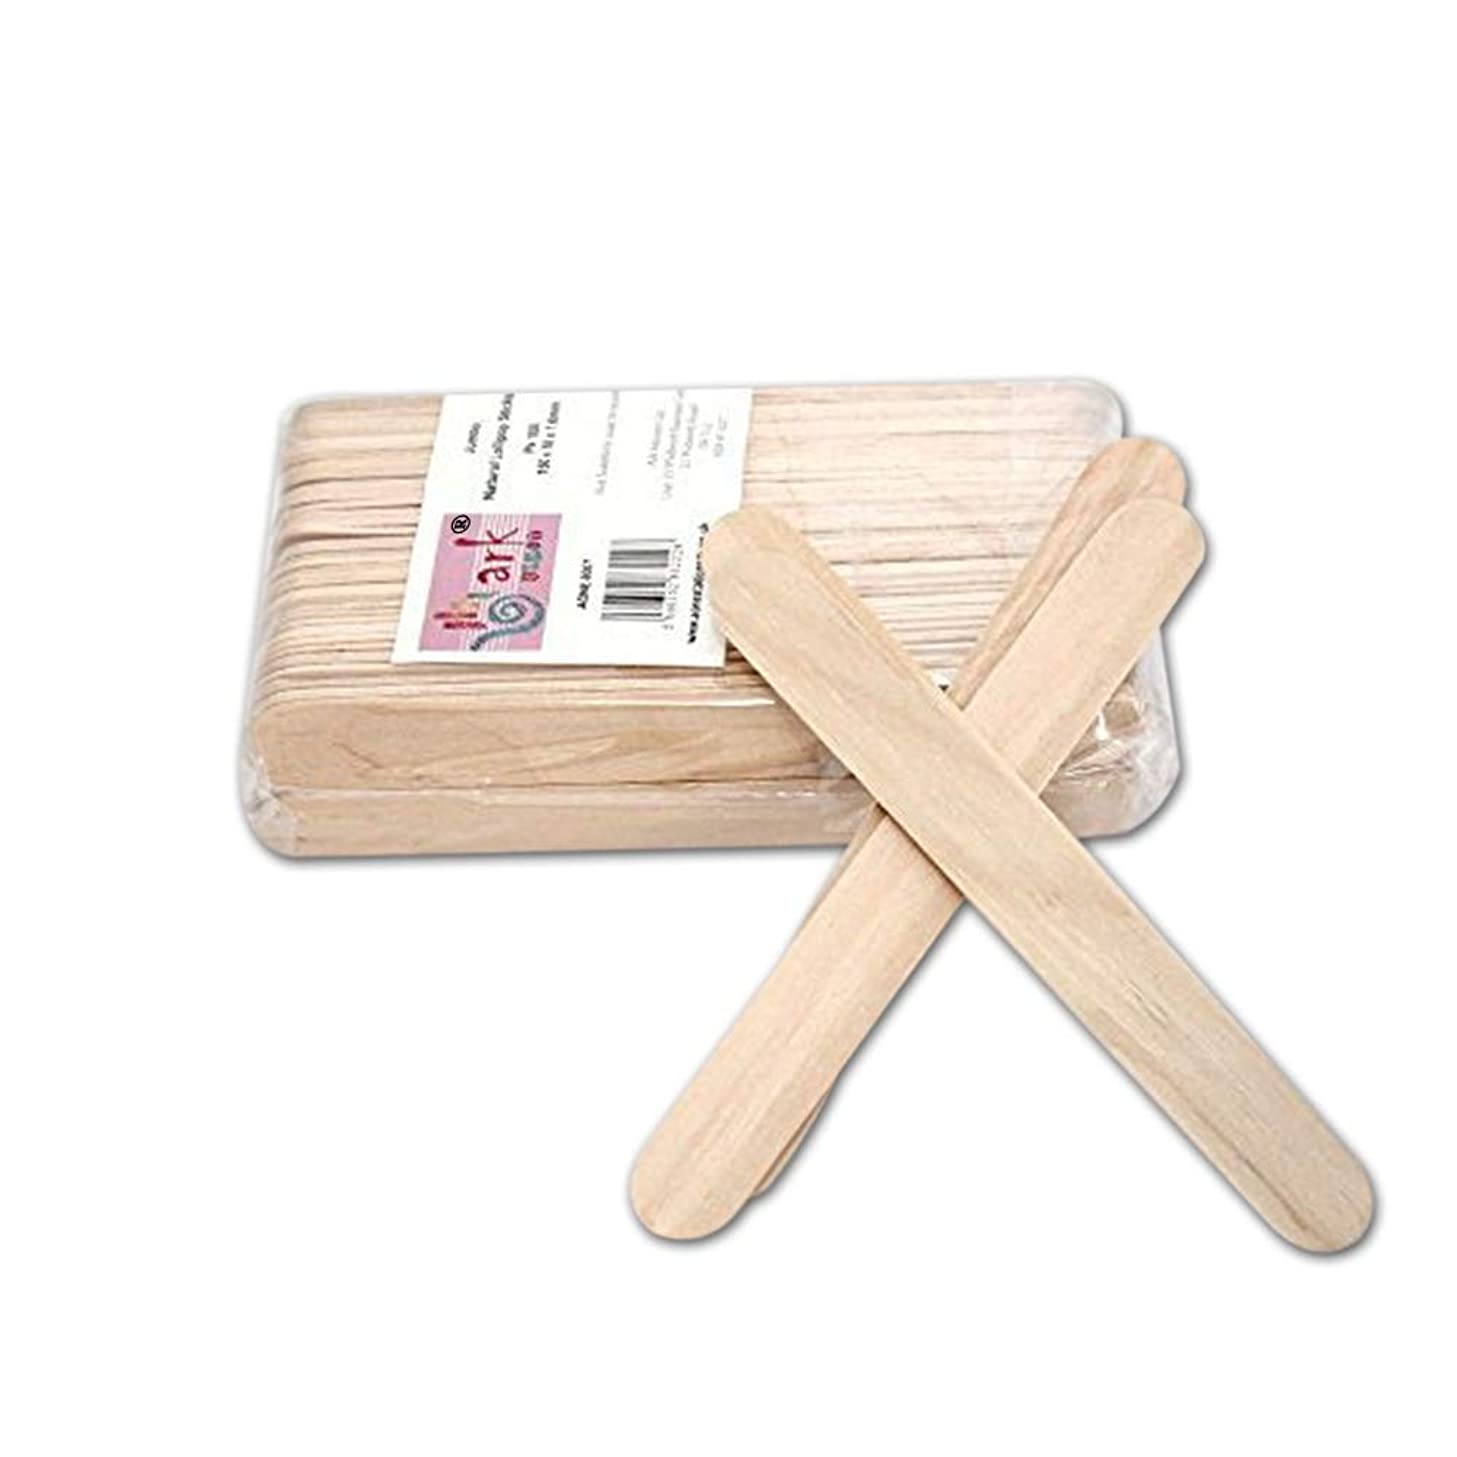 2 x 100 Jumbo Natural Wooden Lollipop Sticks by arkCRAFT